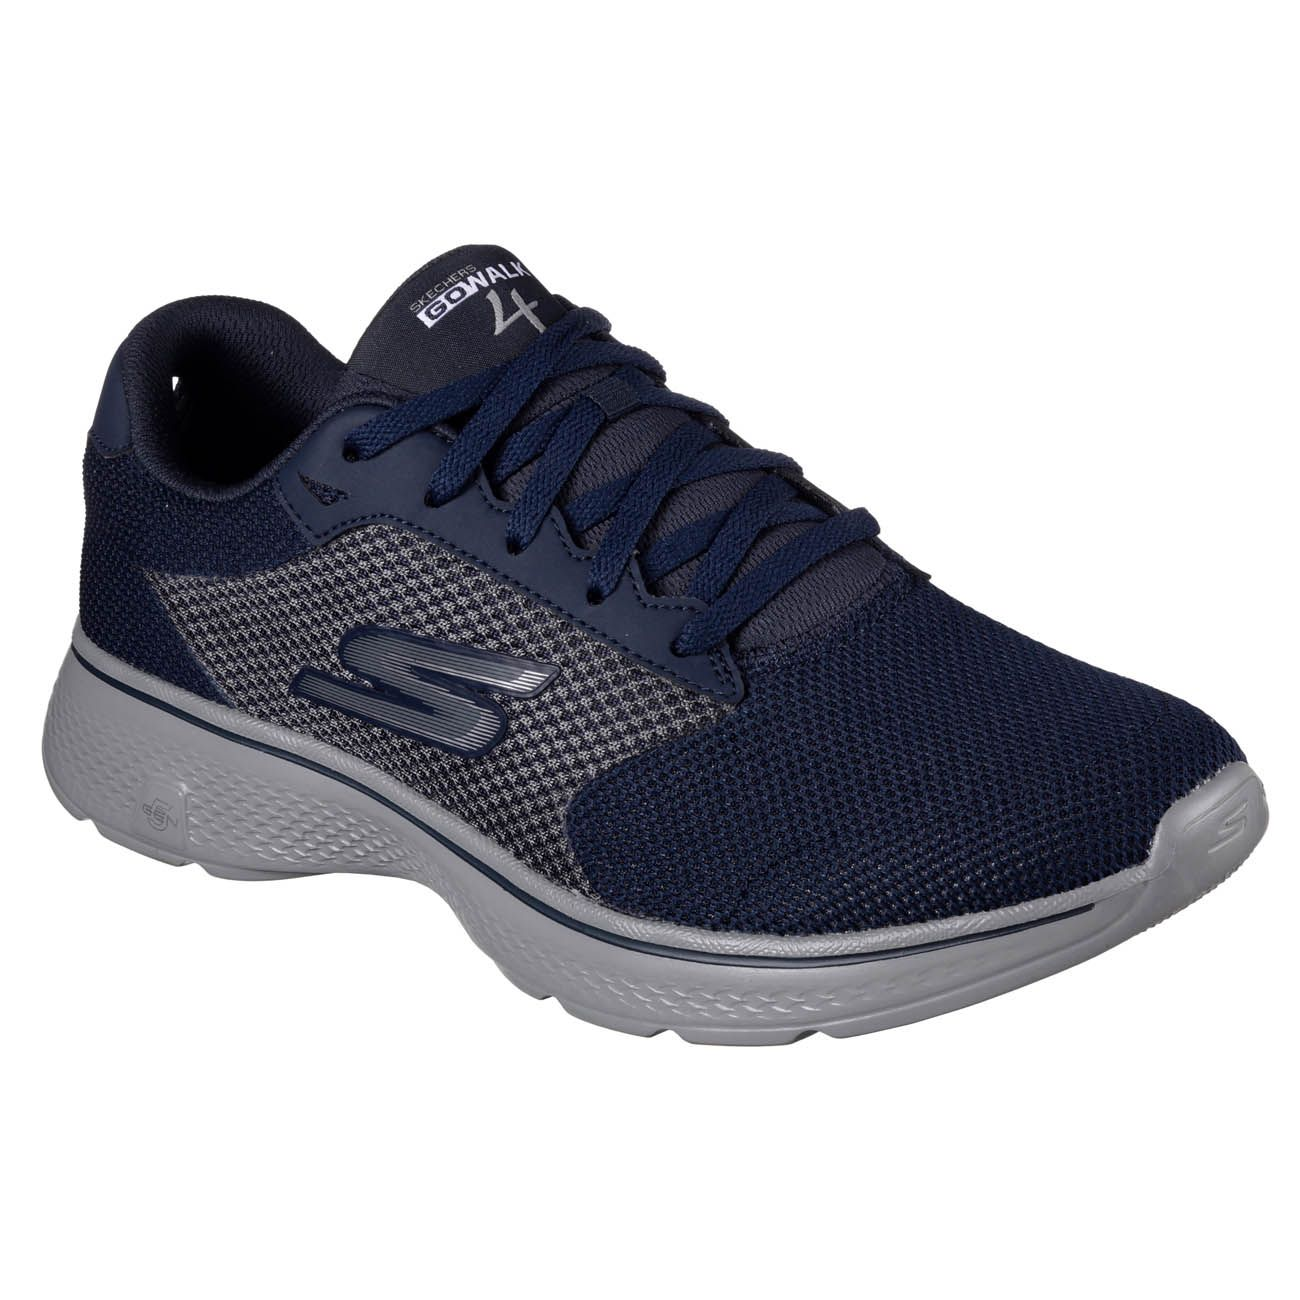 Mens Comfort Walking Shoes Lace Up